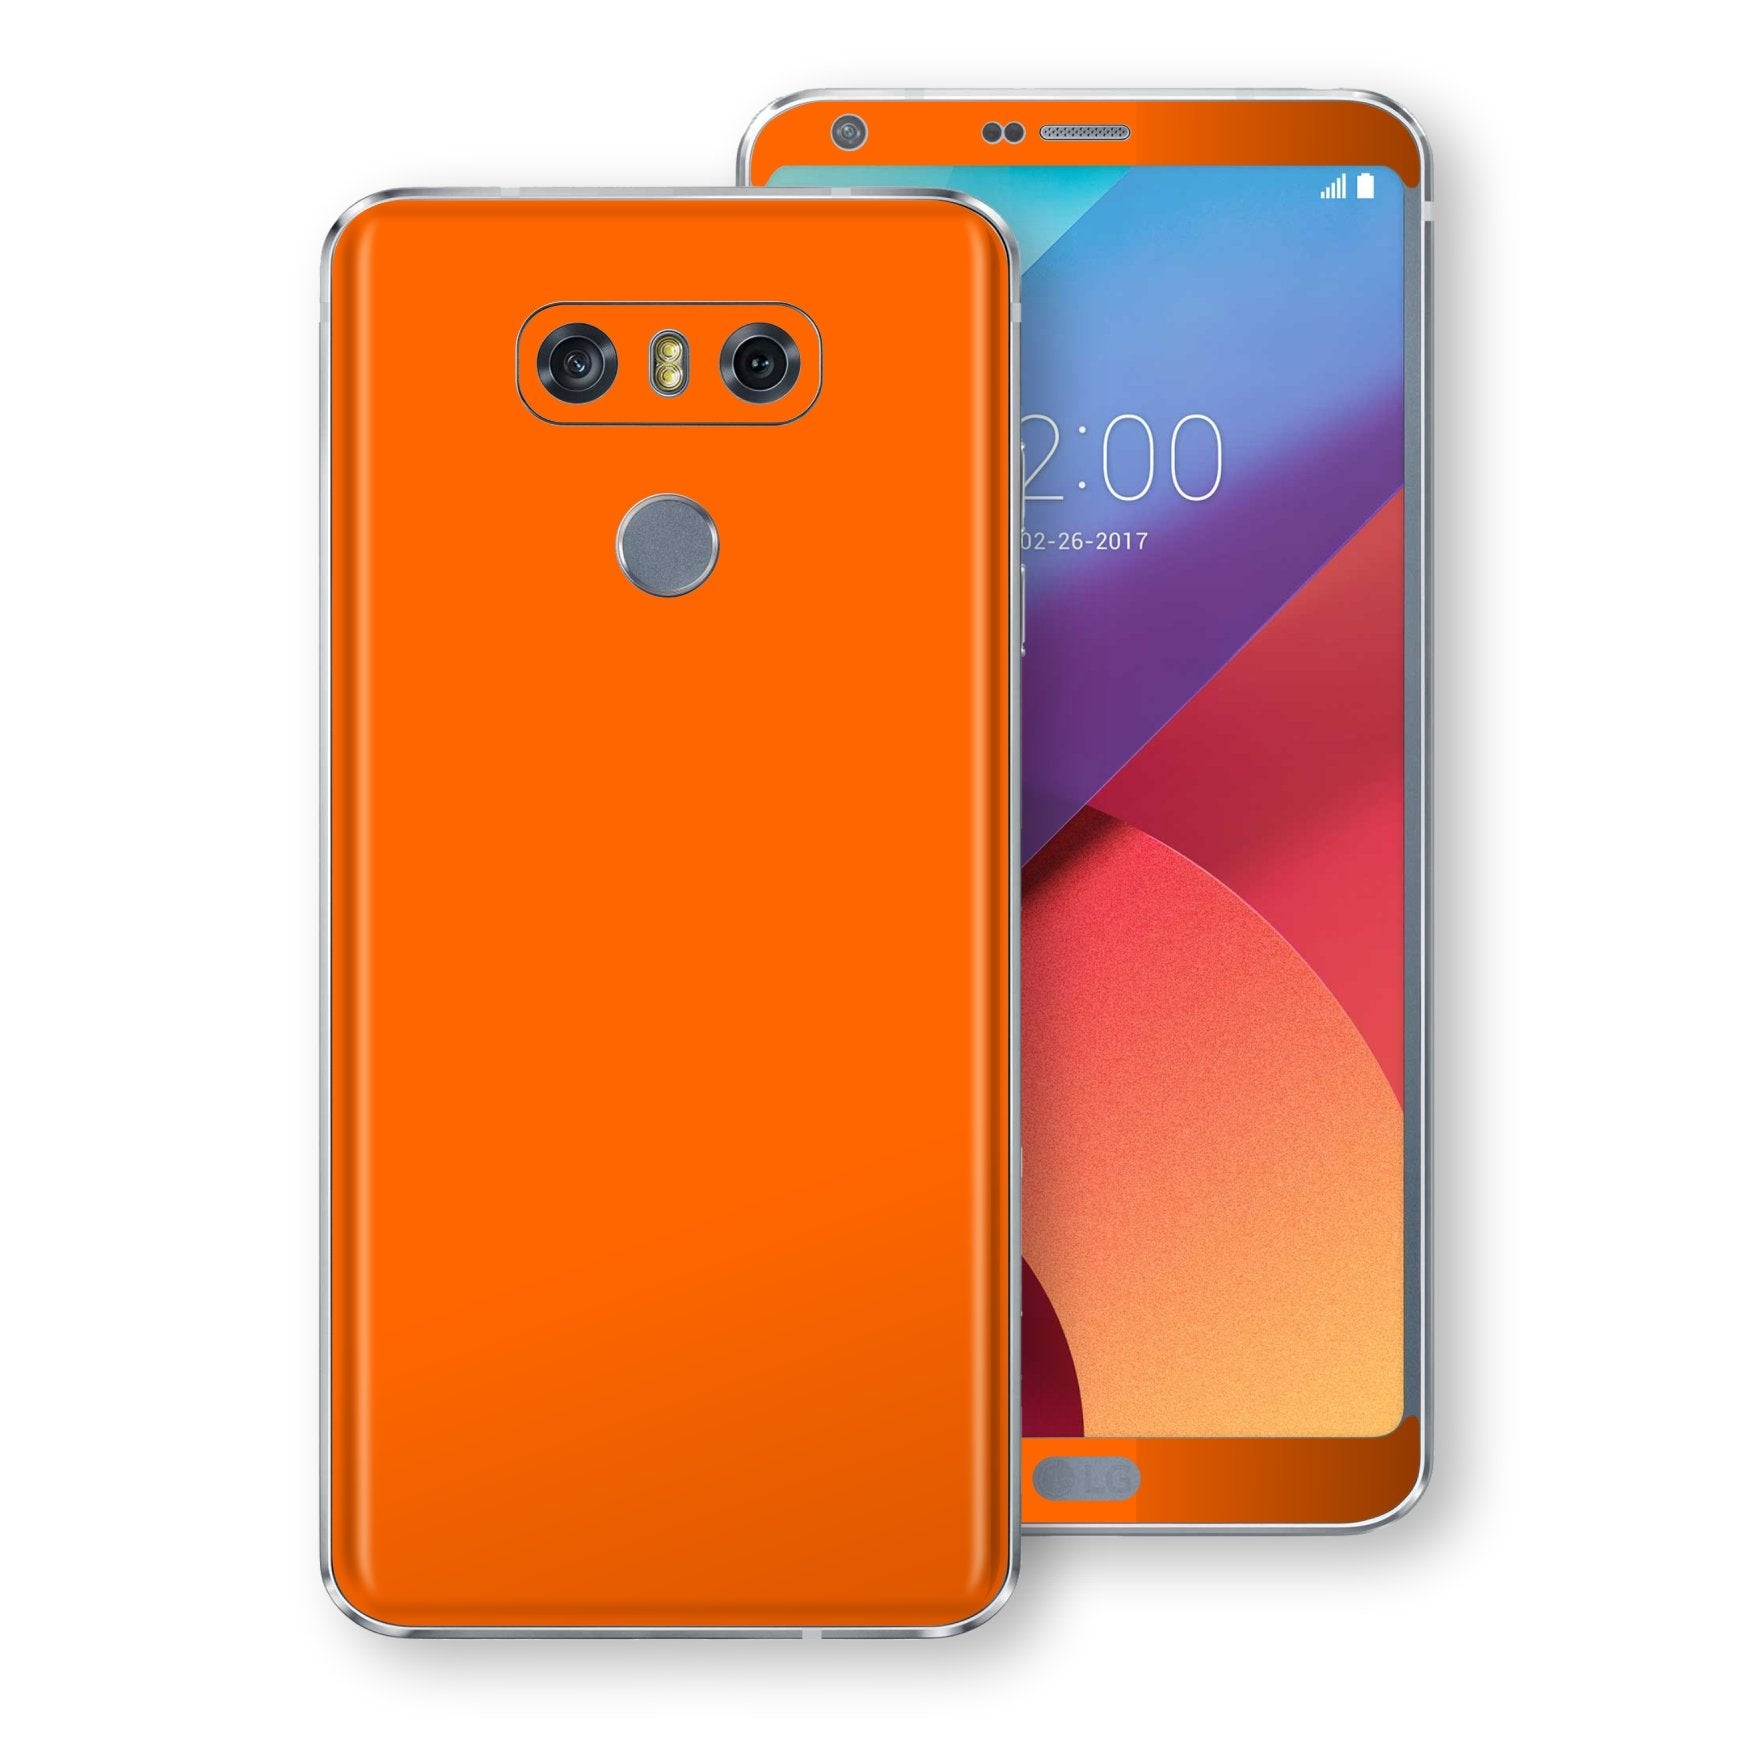 LG G6 Orange Matt Skin, Decal, Wrap, Protector, Cover by EasySkinz | EasySkinz.com